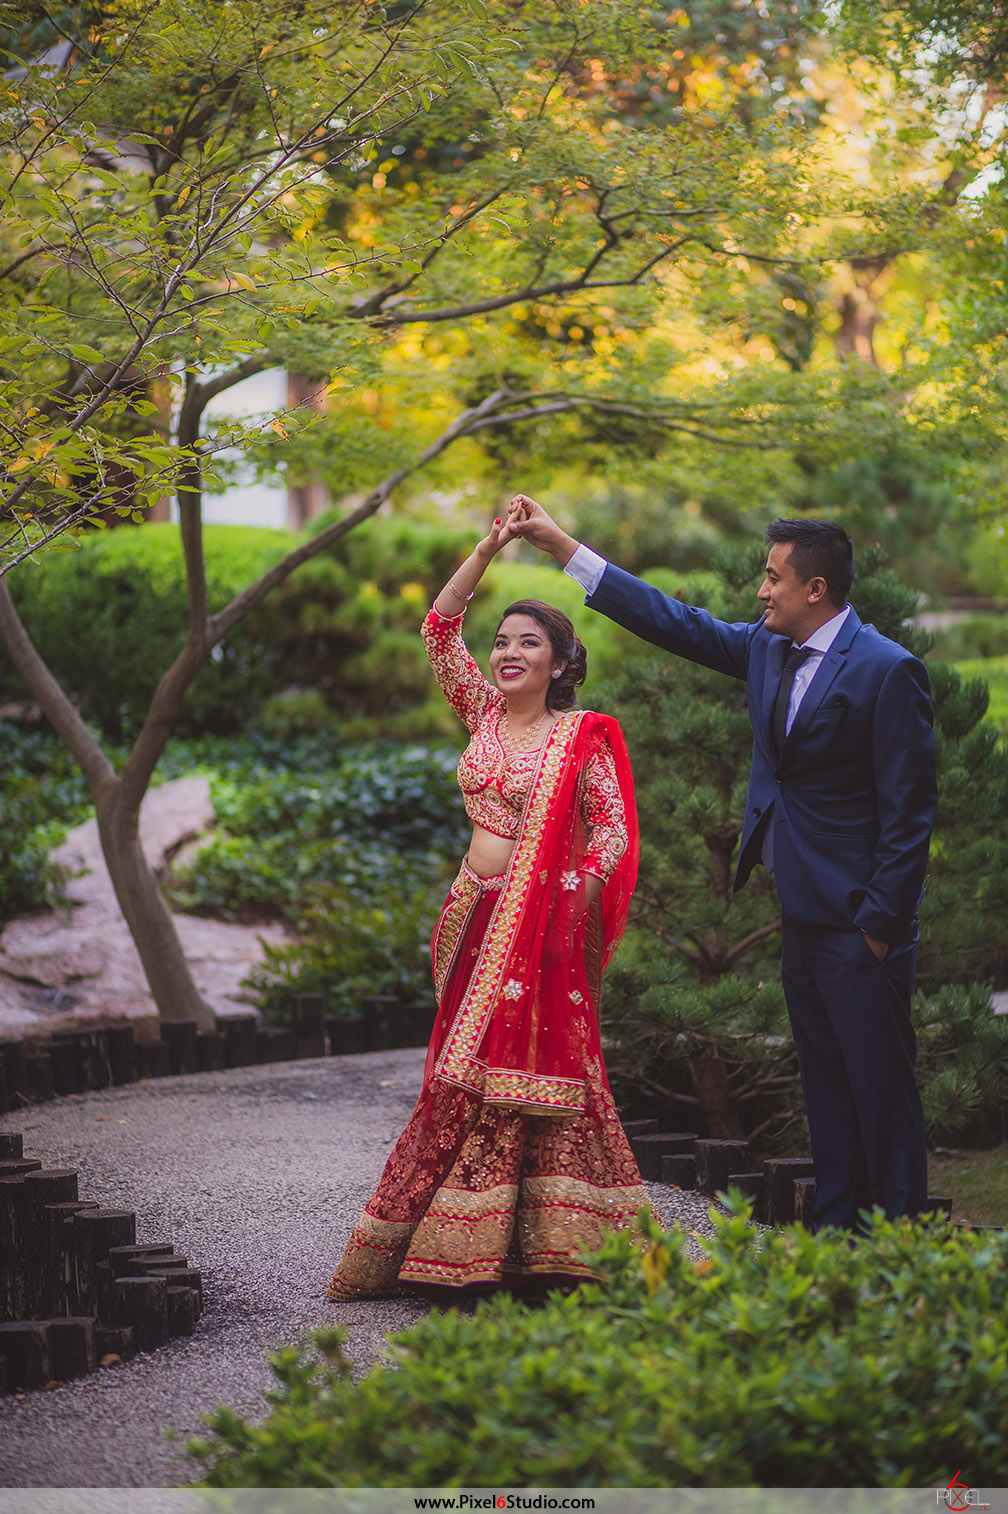 Venue: Japanese Garden, Forthworth, Texas | Photographer: Manjil Shrestha  [Pixel 6 Studio]